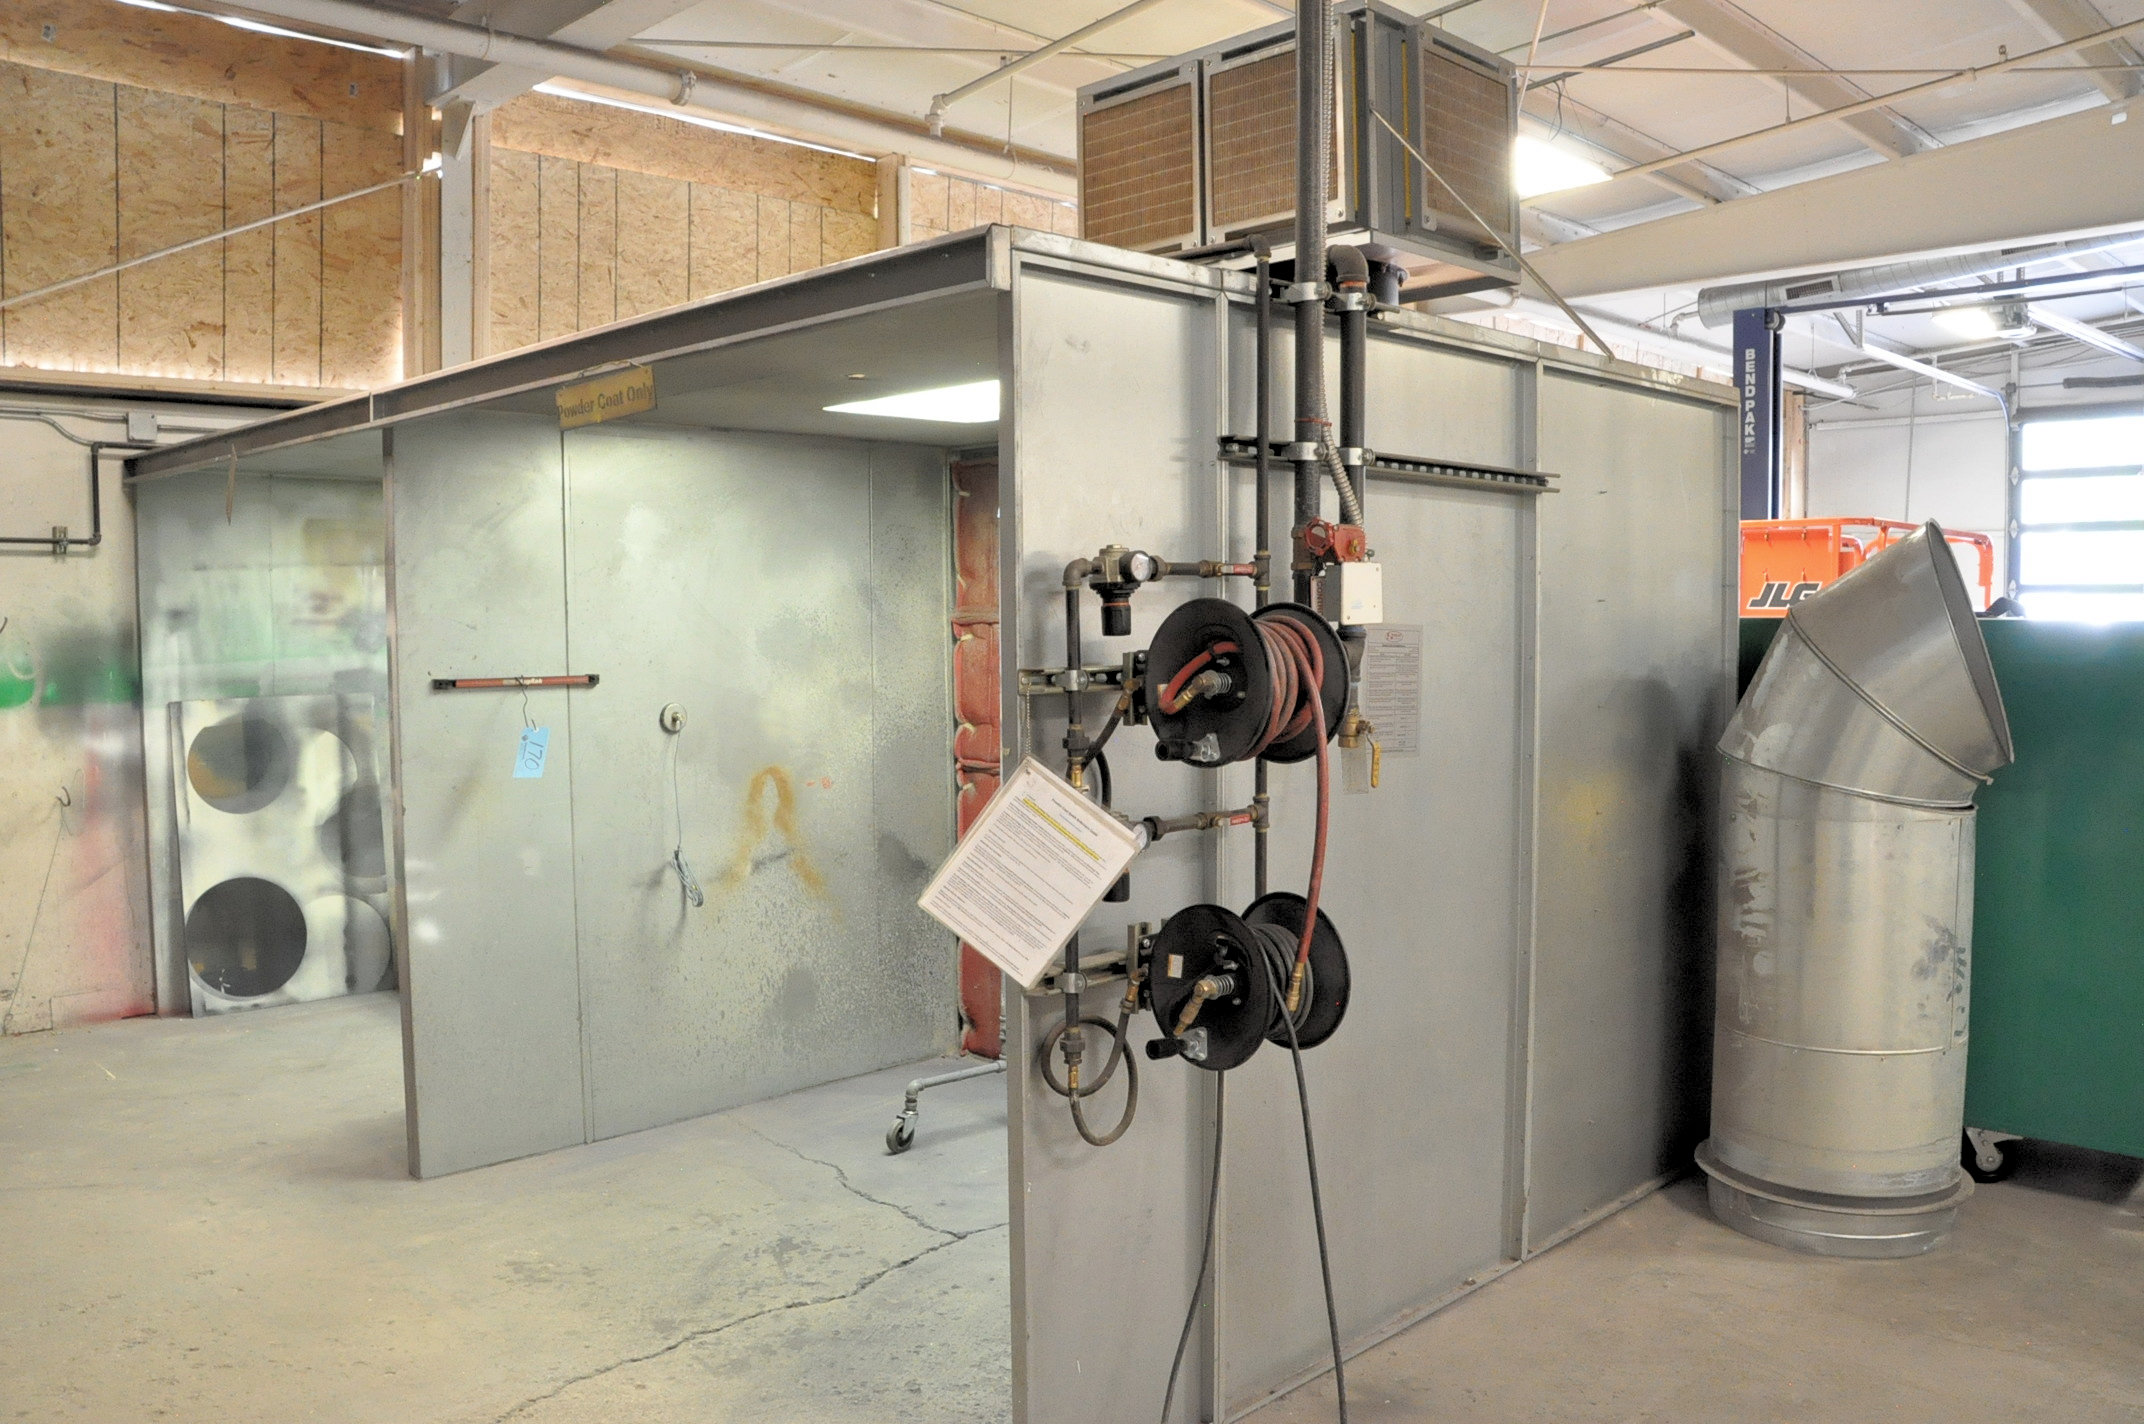 Eastwood Powder Coat Booth with Booth Mounted Filtered Exhaust Blower Air System, 8' x 7' x 6.5' - Image 3 of 3